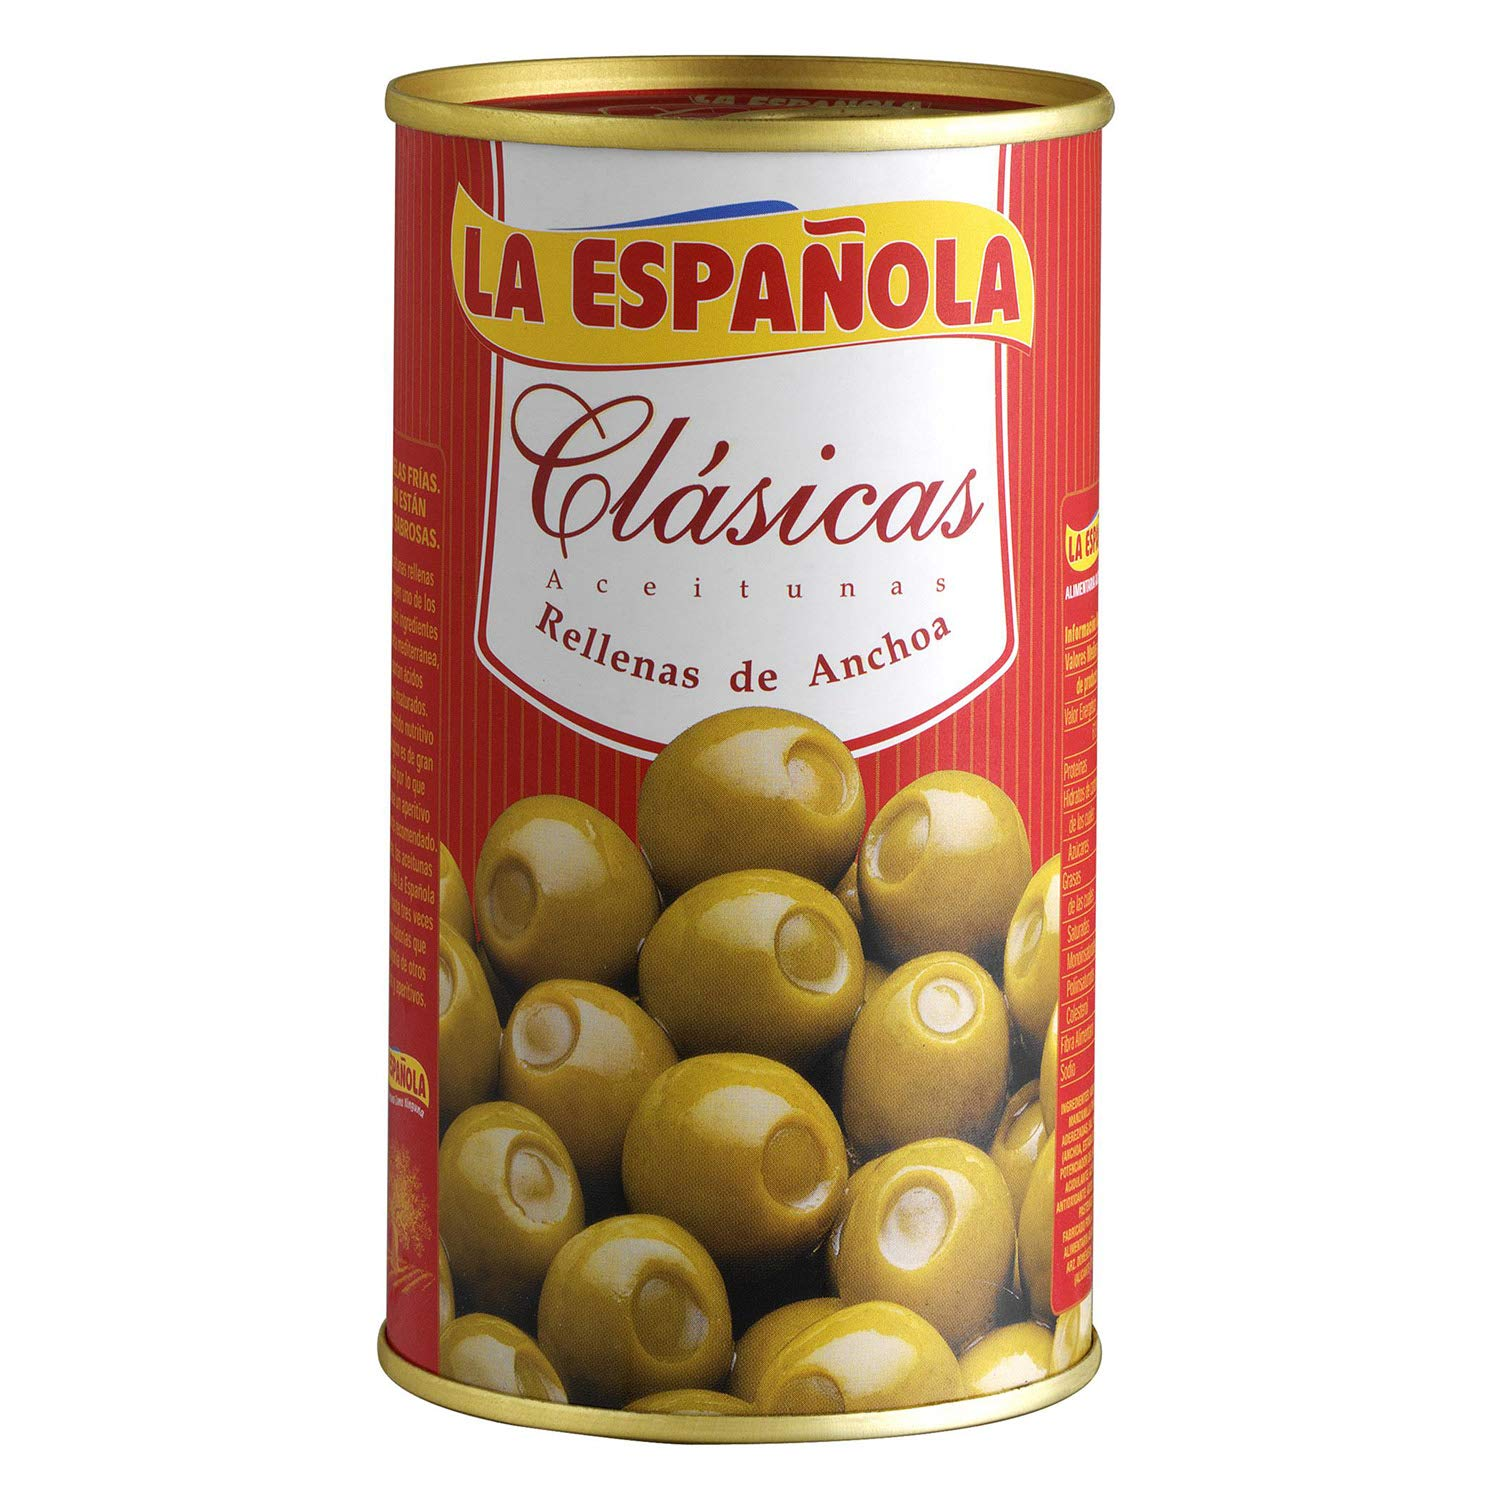 La Espanola. Clasicas Green Olives stuffed with Anchovies. 350g (12,35oz). Pack of 6